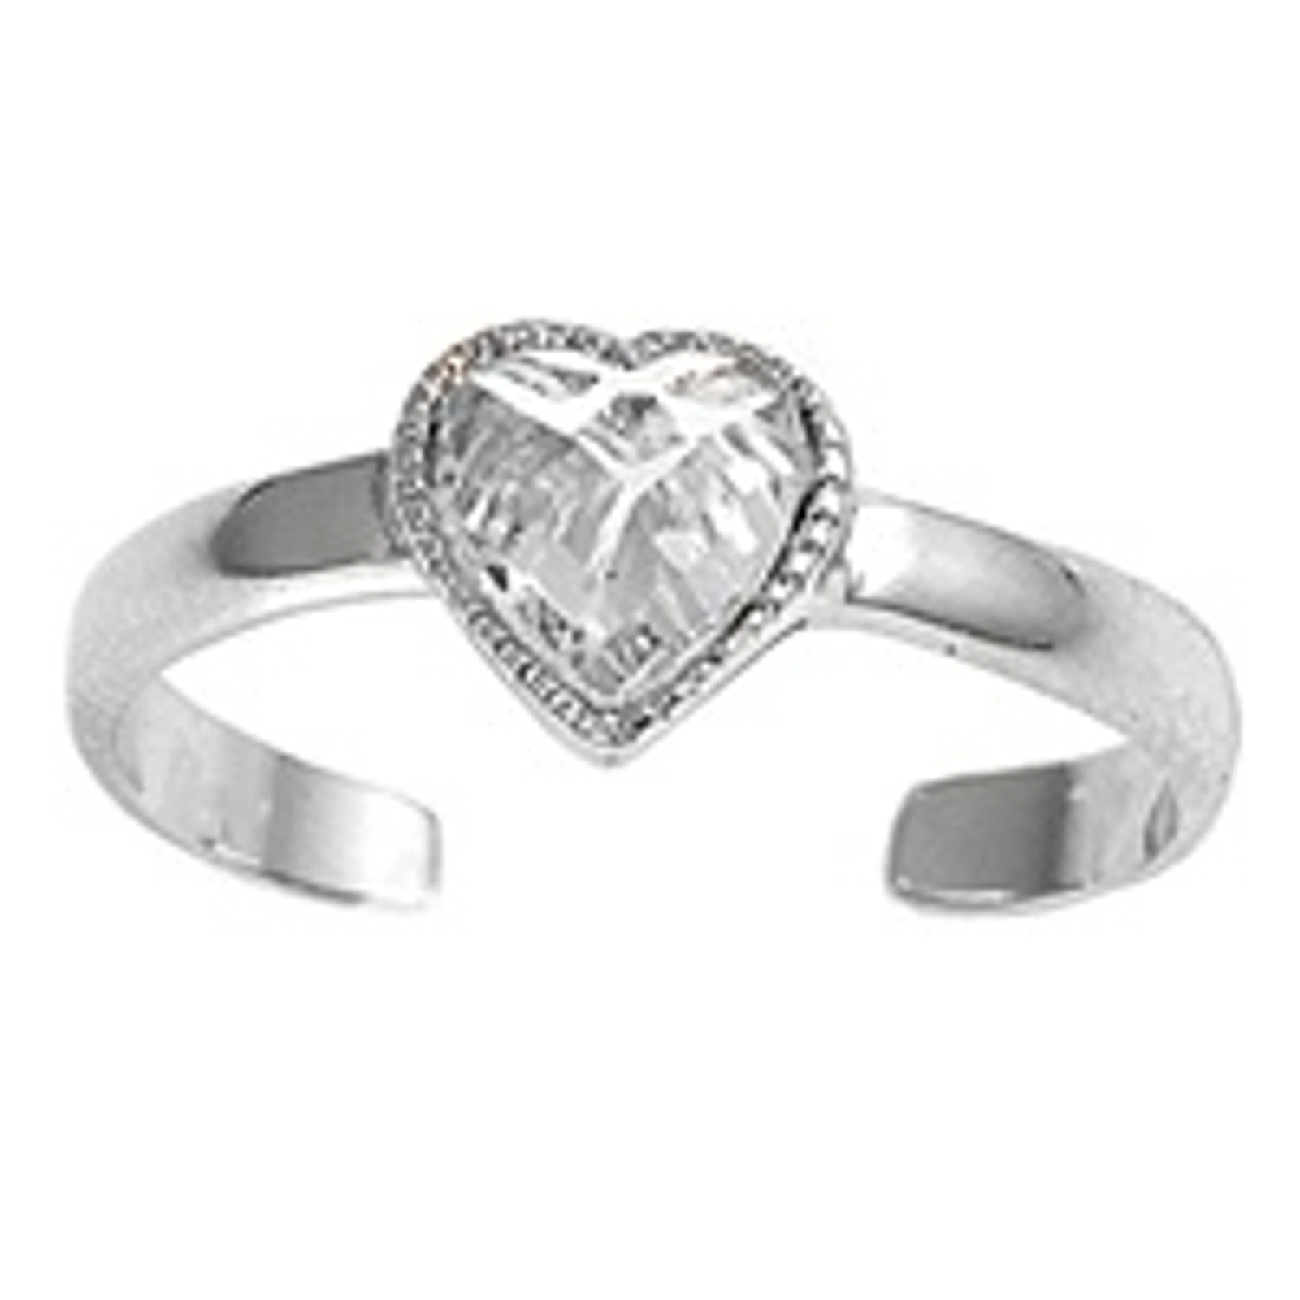 Cubic Zirconia Heart Adjustable Toe Ring